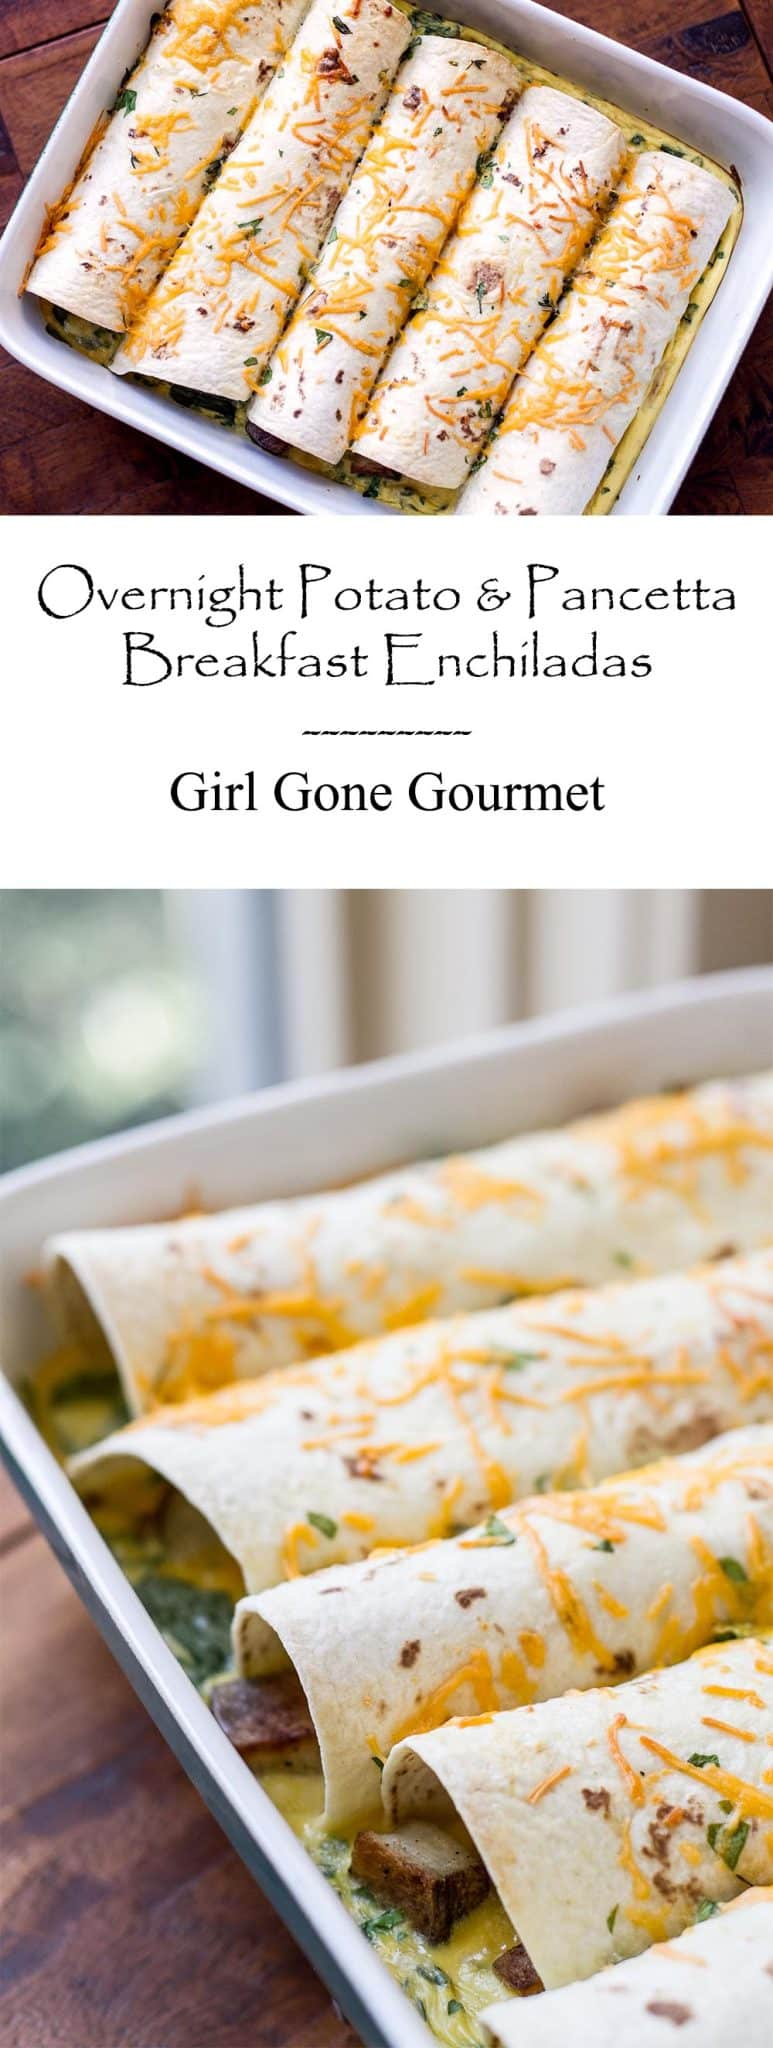 Make these the night before so breakfast is a breeze!   girlgonegourmet.com